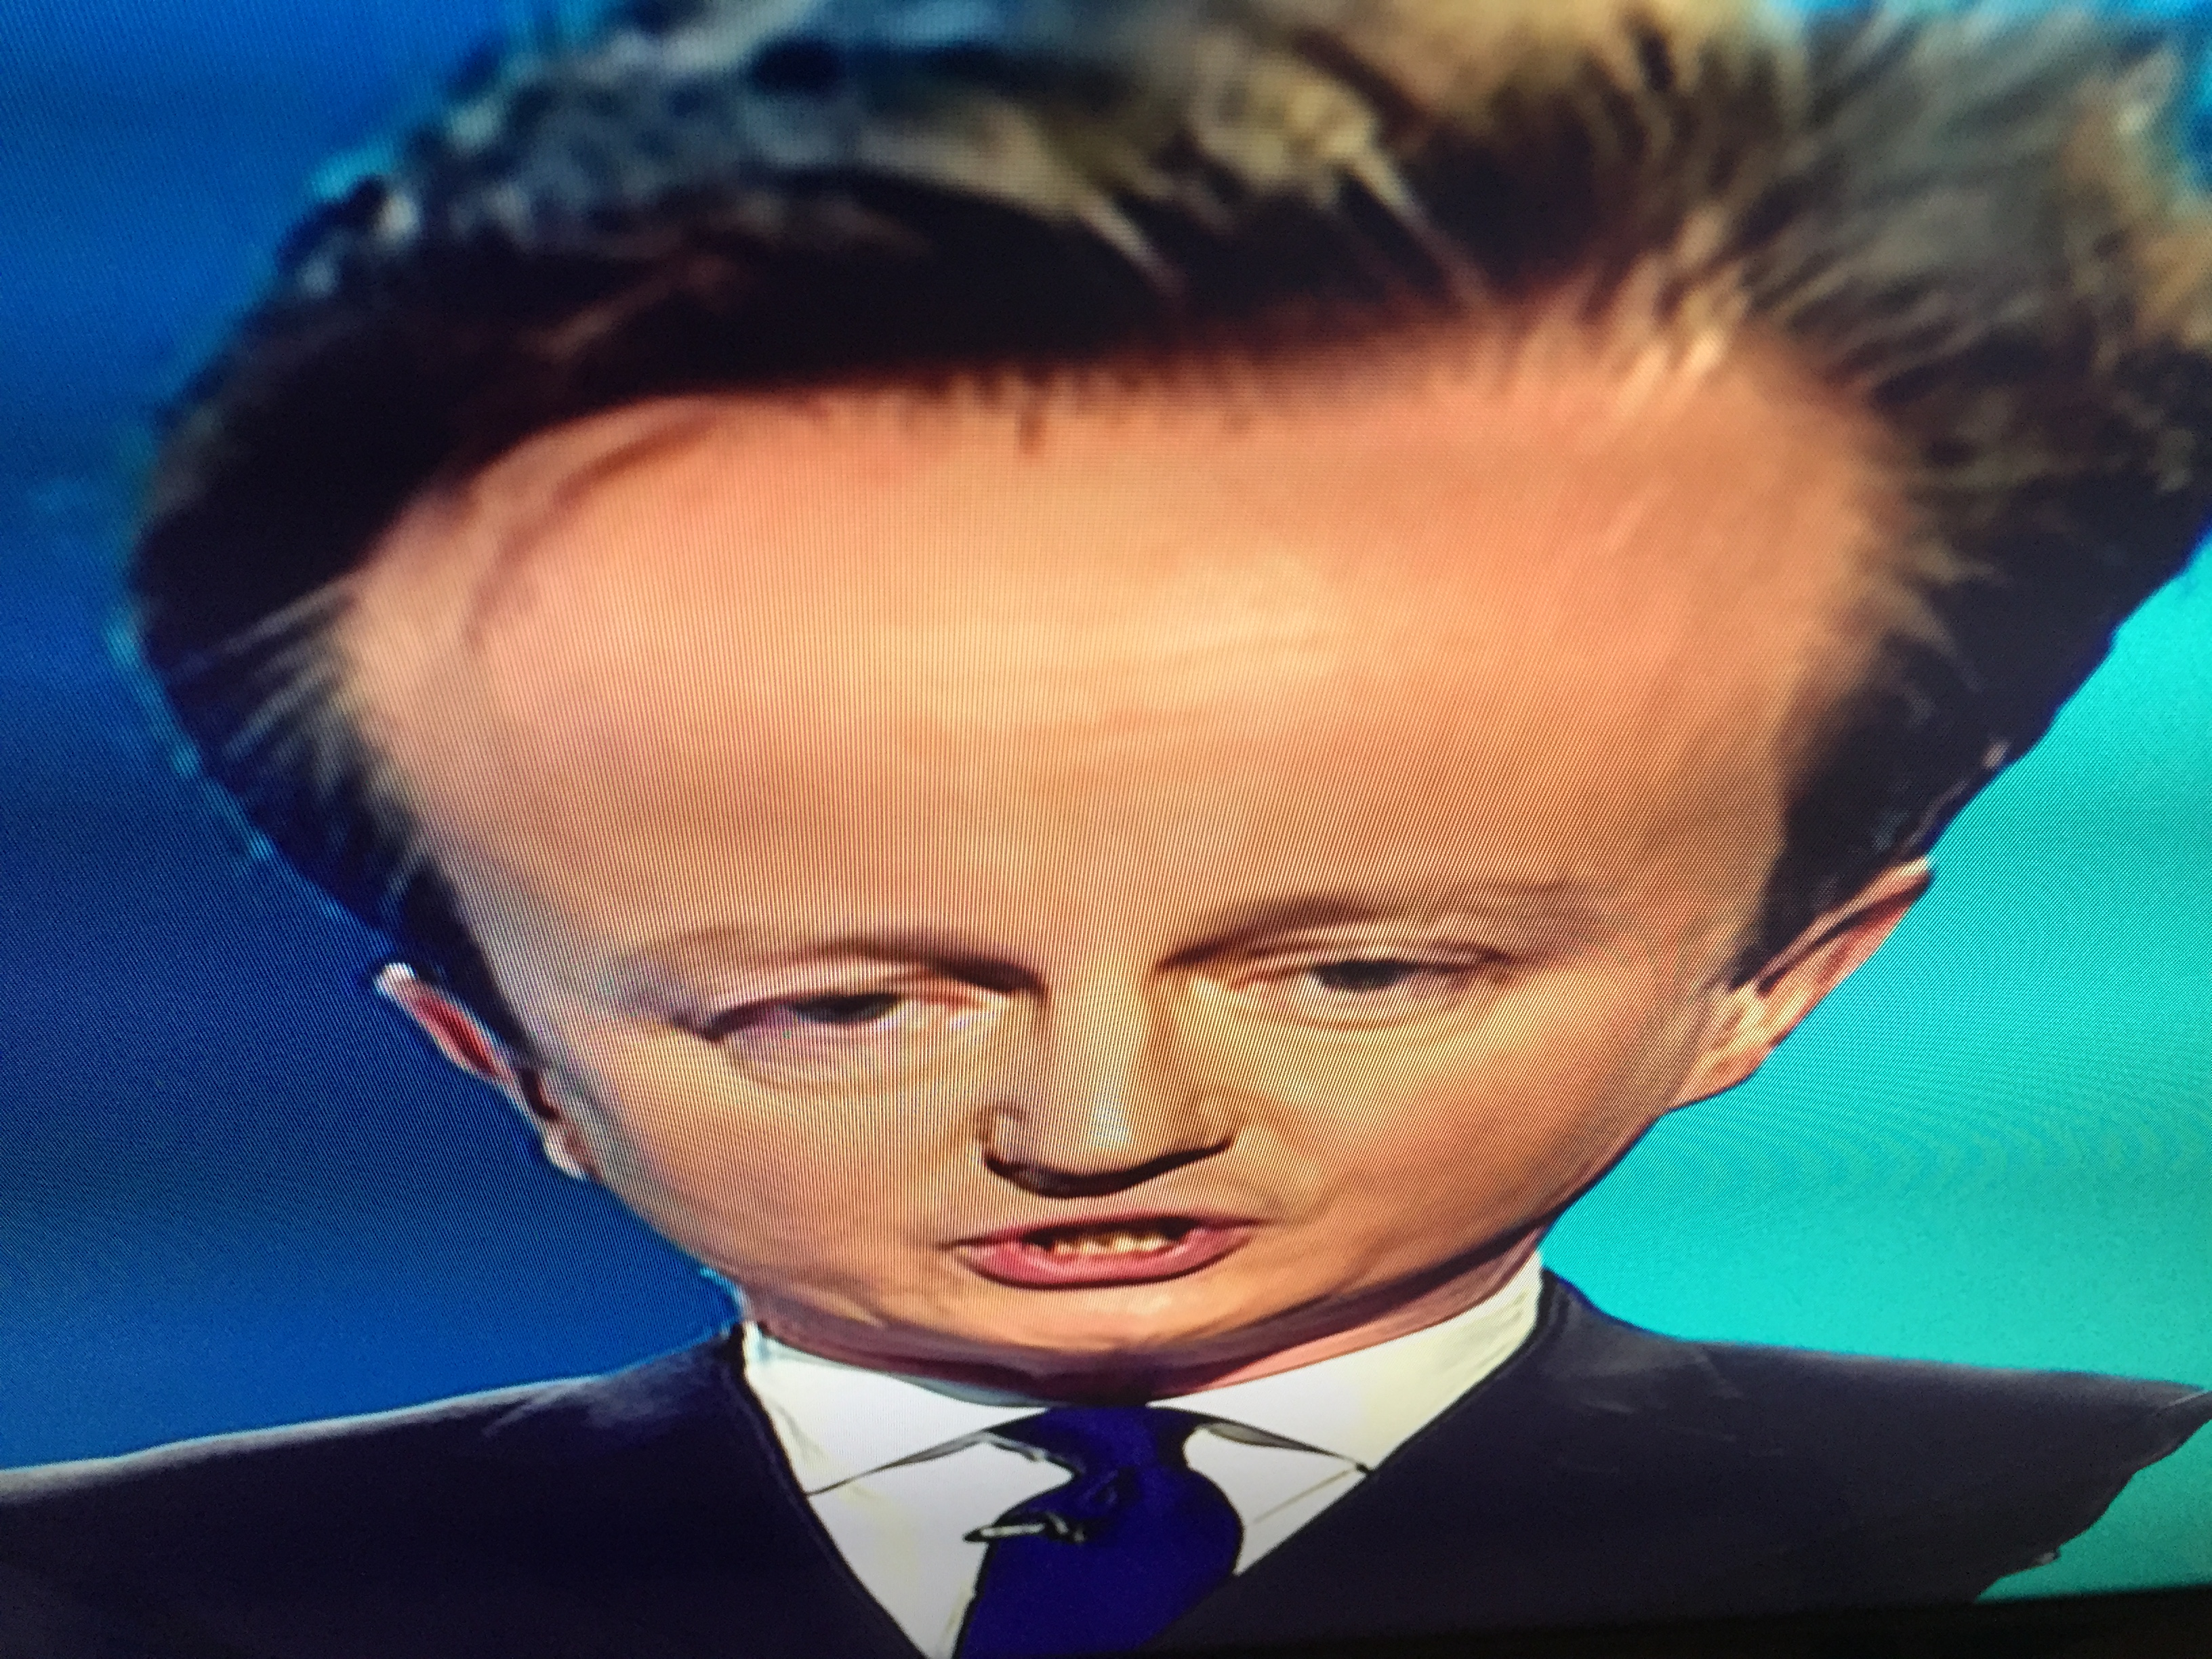 David Cameron on UK Election Debate 2015